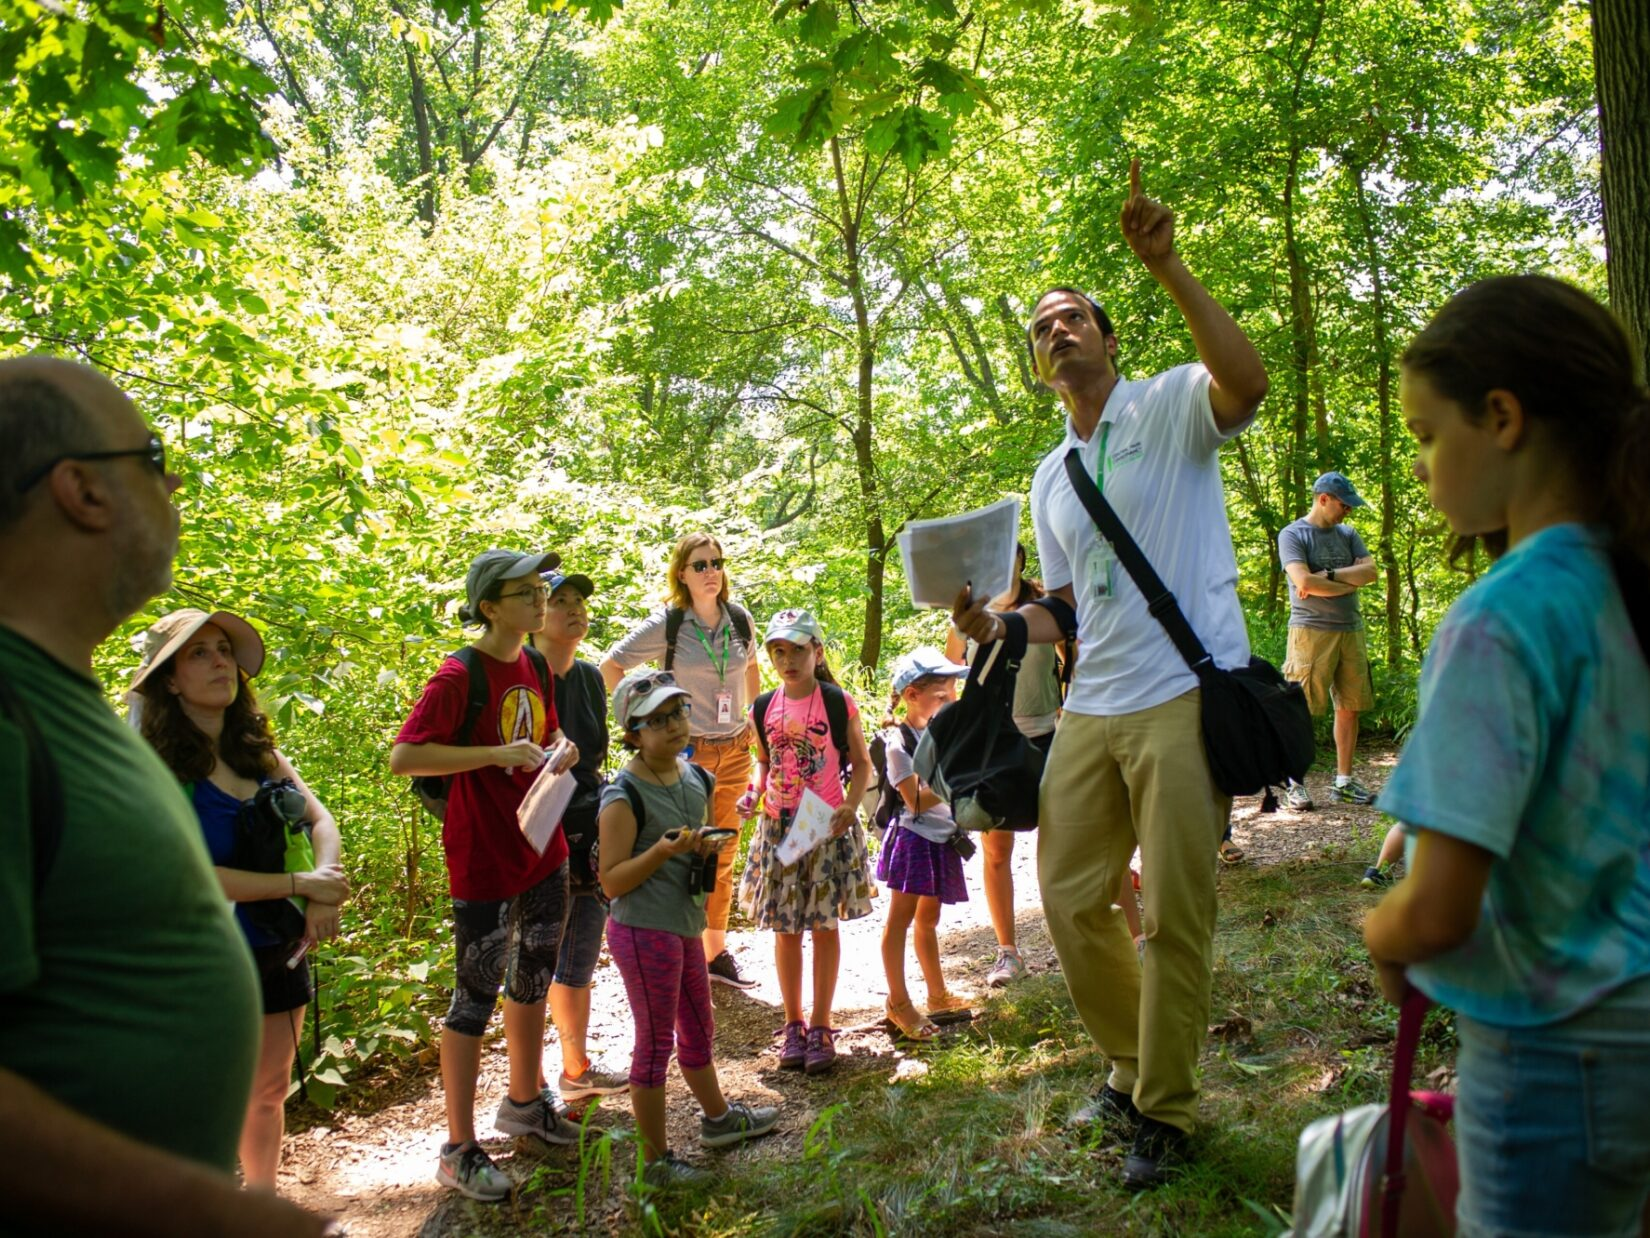 Kids and tour-goers in rapt attention to a tour guide in the North Woods